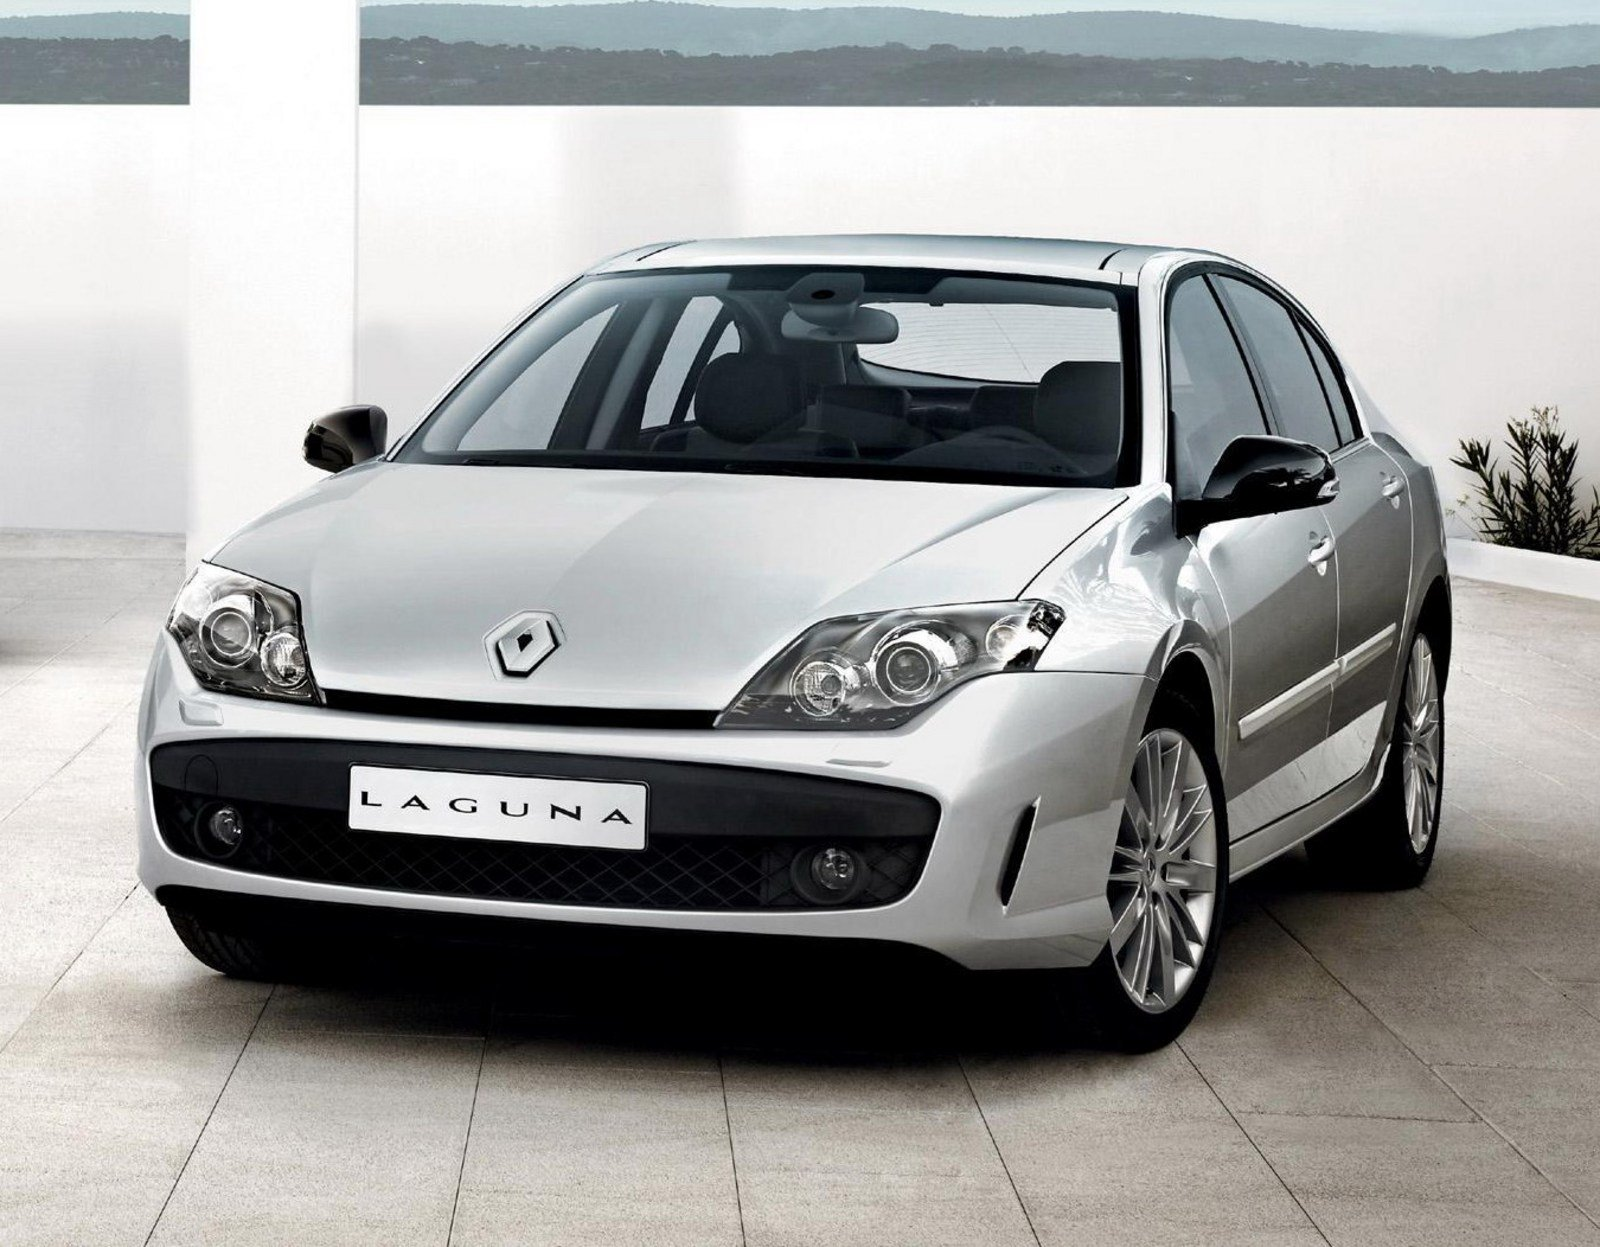 2008 renault laguna gt review top speed. Black Bedroom Furniture Sets. Home Design Ideas